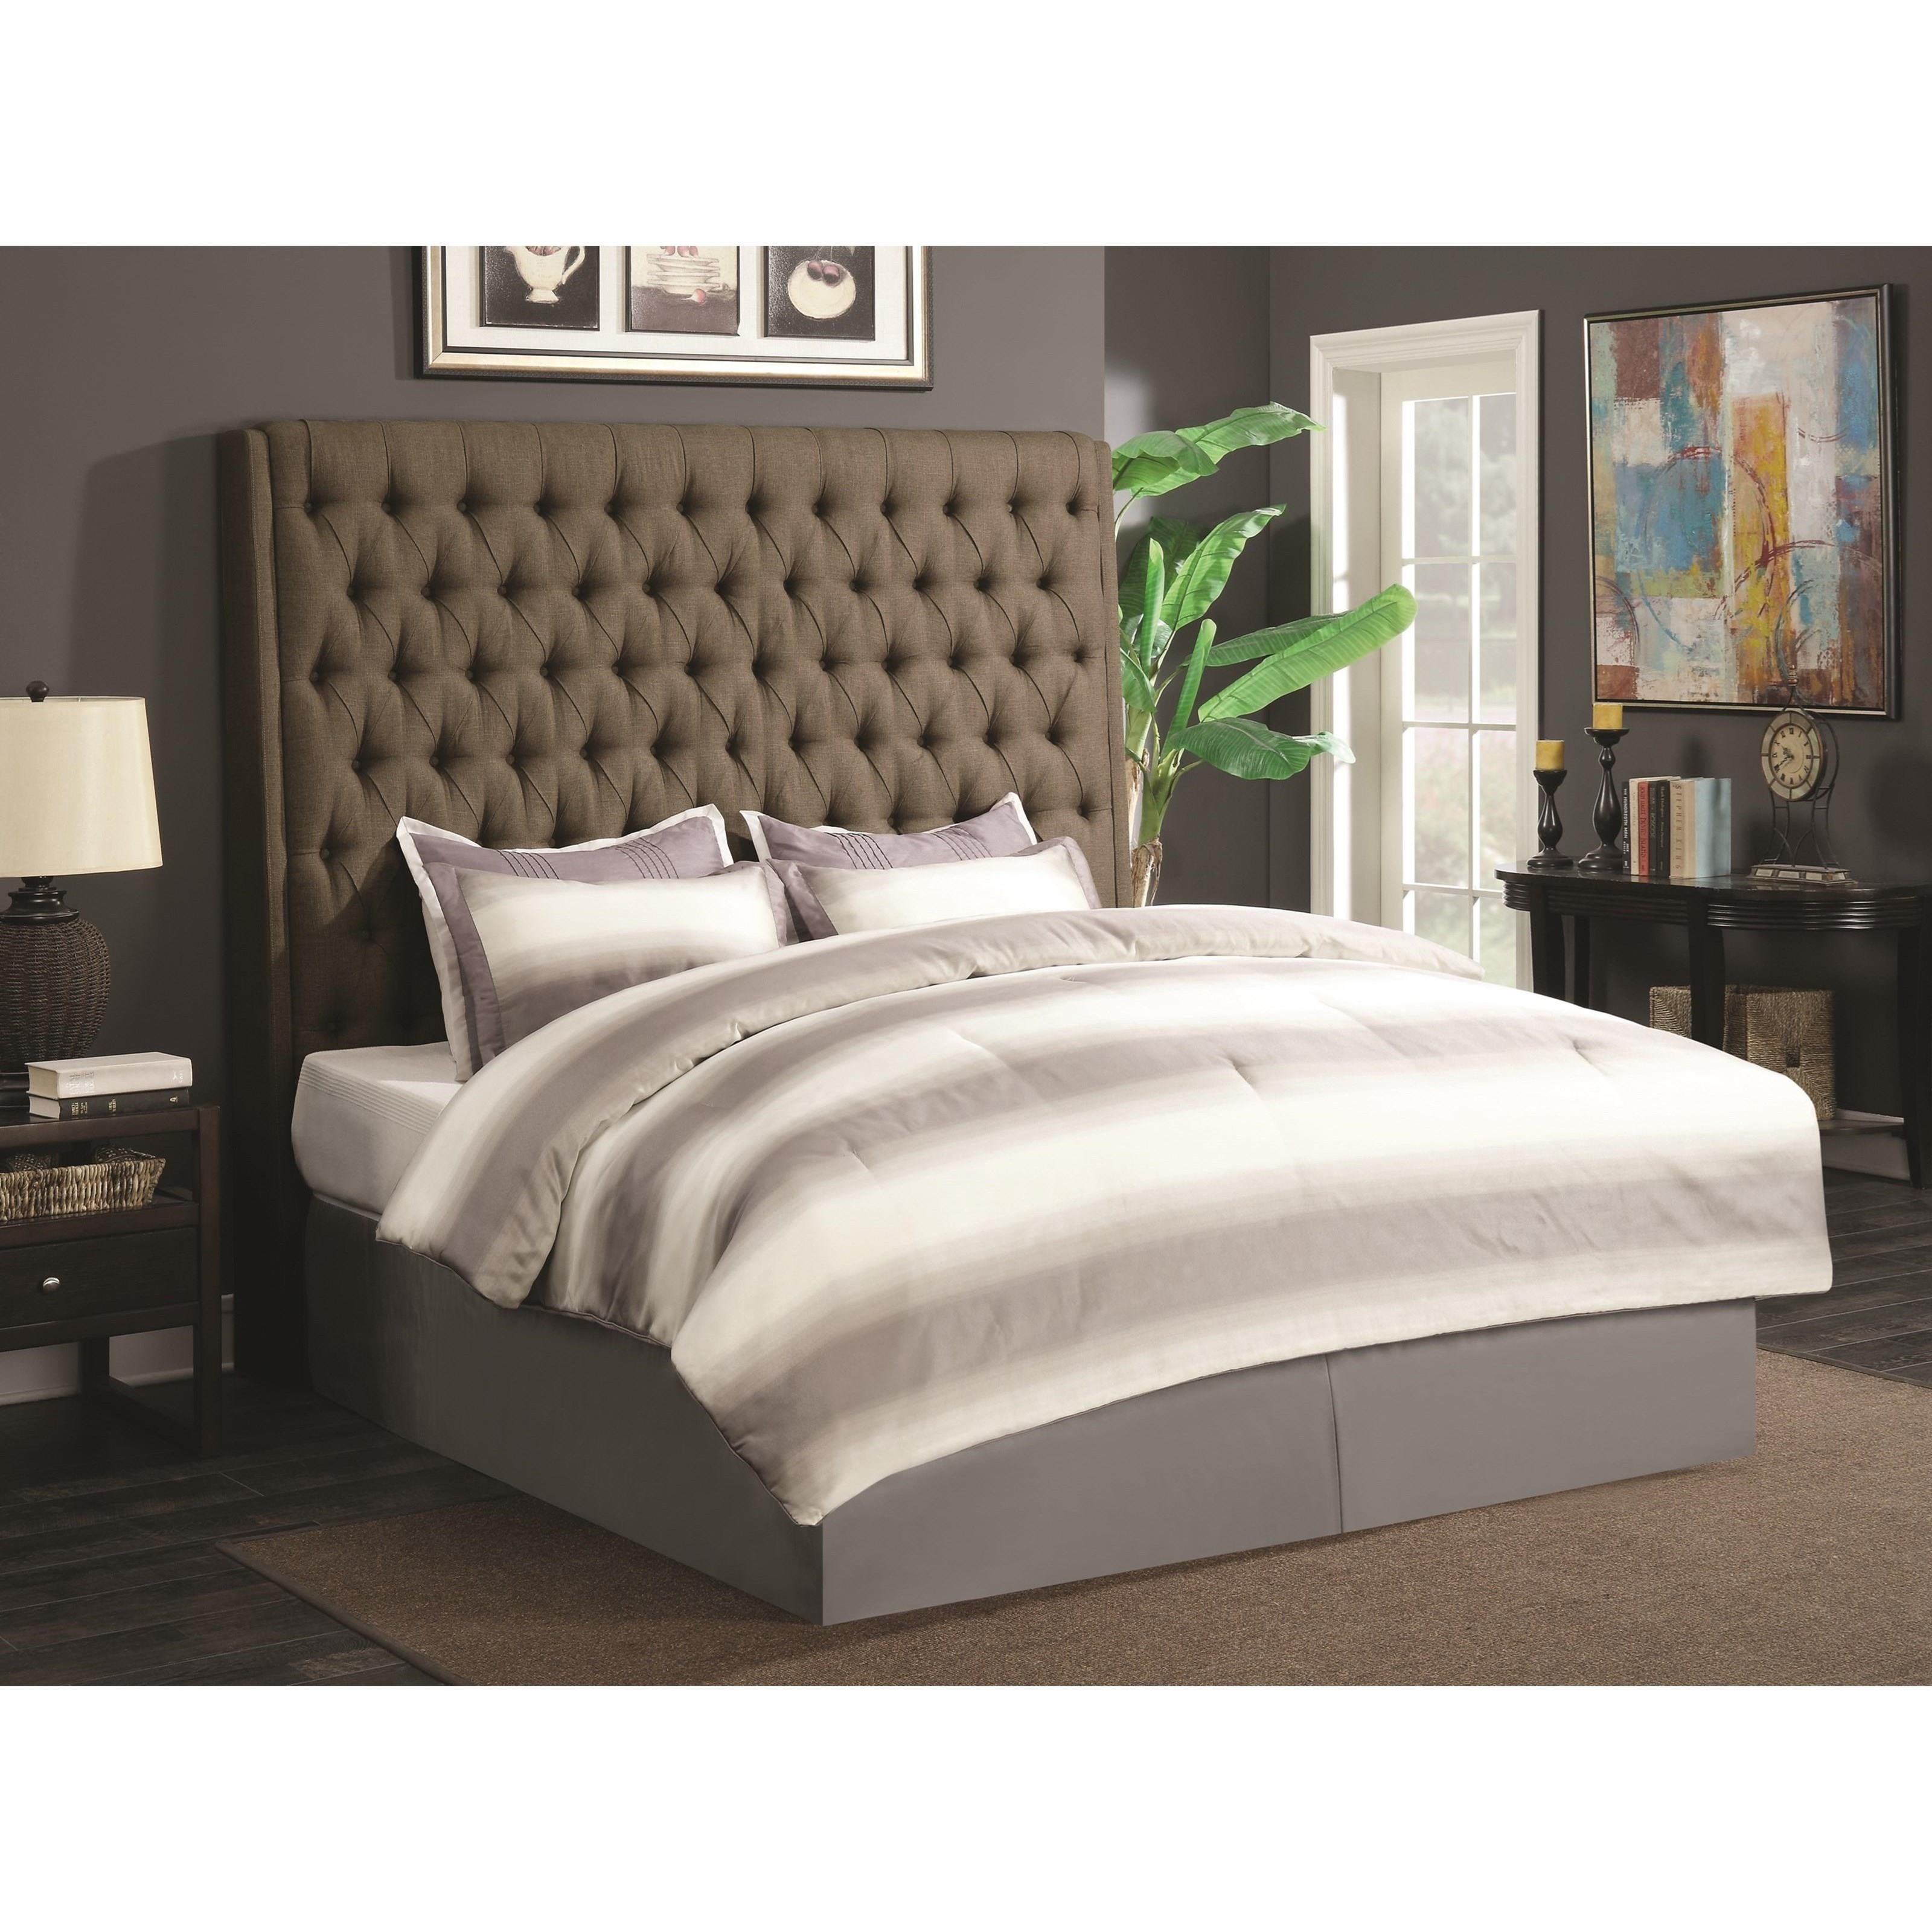 Coaster Upholstered Beds 300721QB1 Upholstered Queen Bed with ...